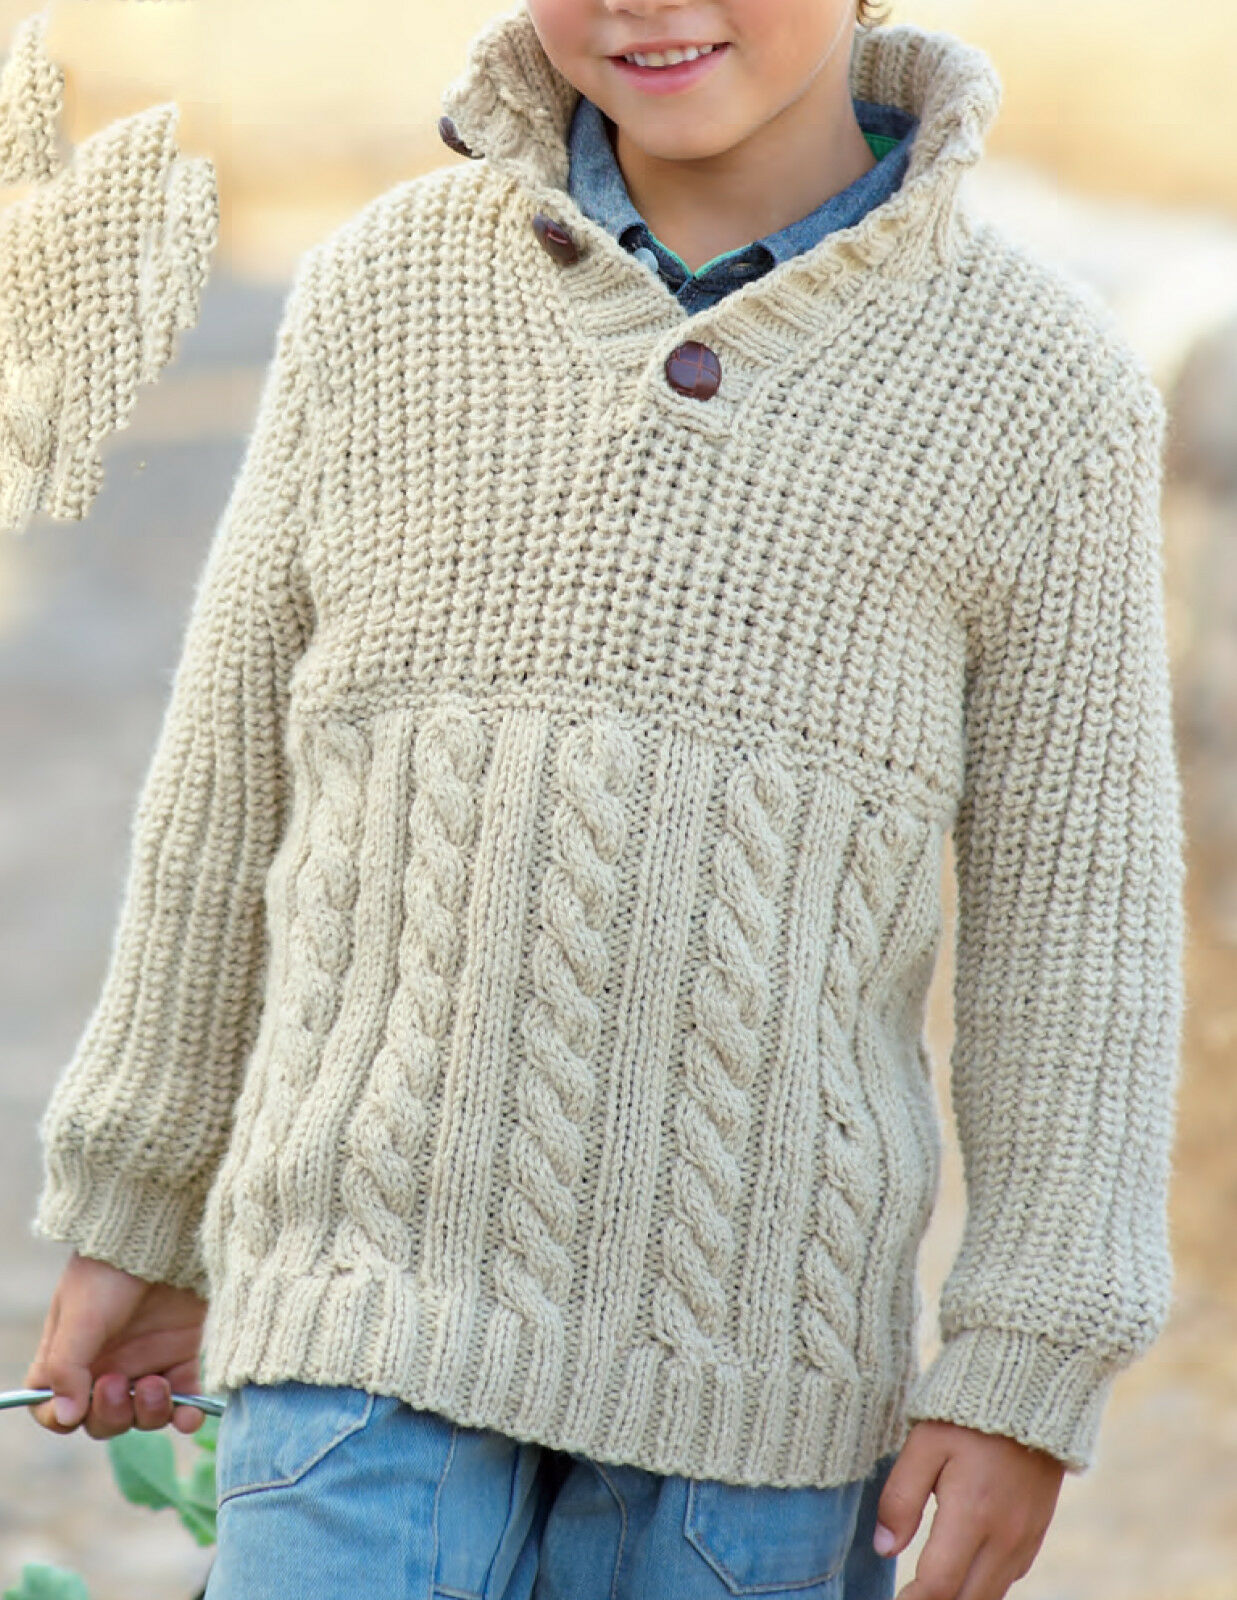 Knitting Styles Patterns : Knitting pattern boys cable sweater in aran